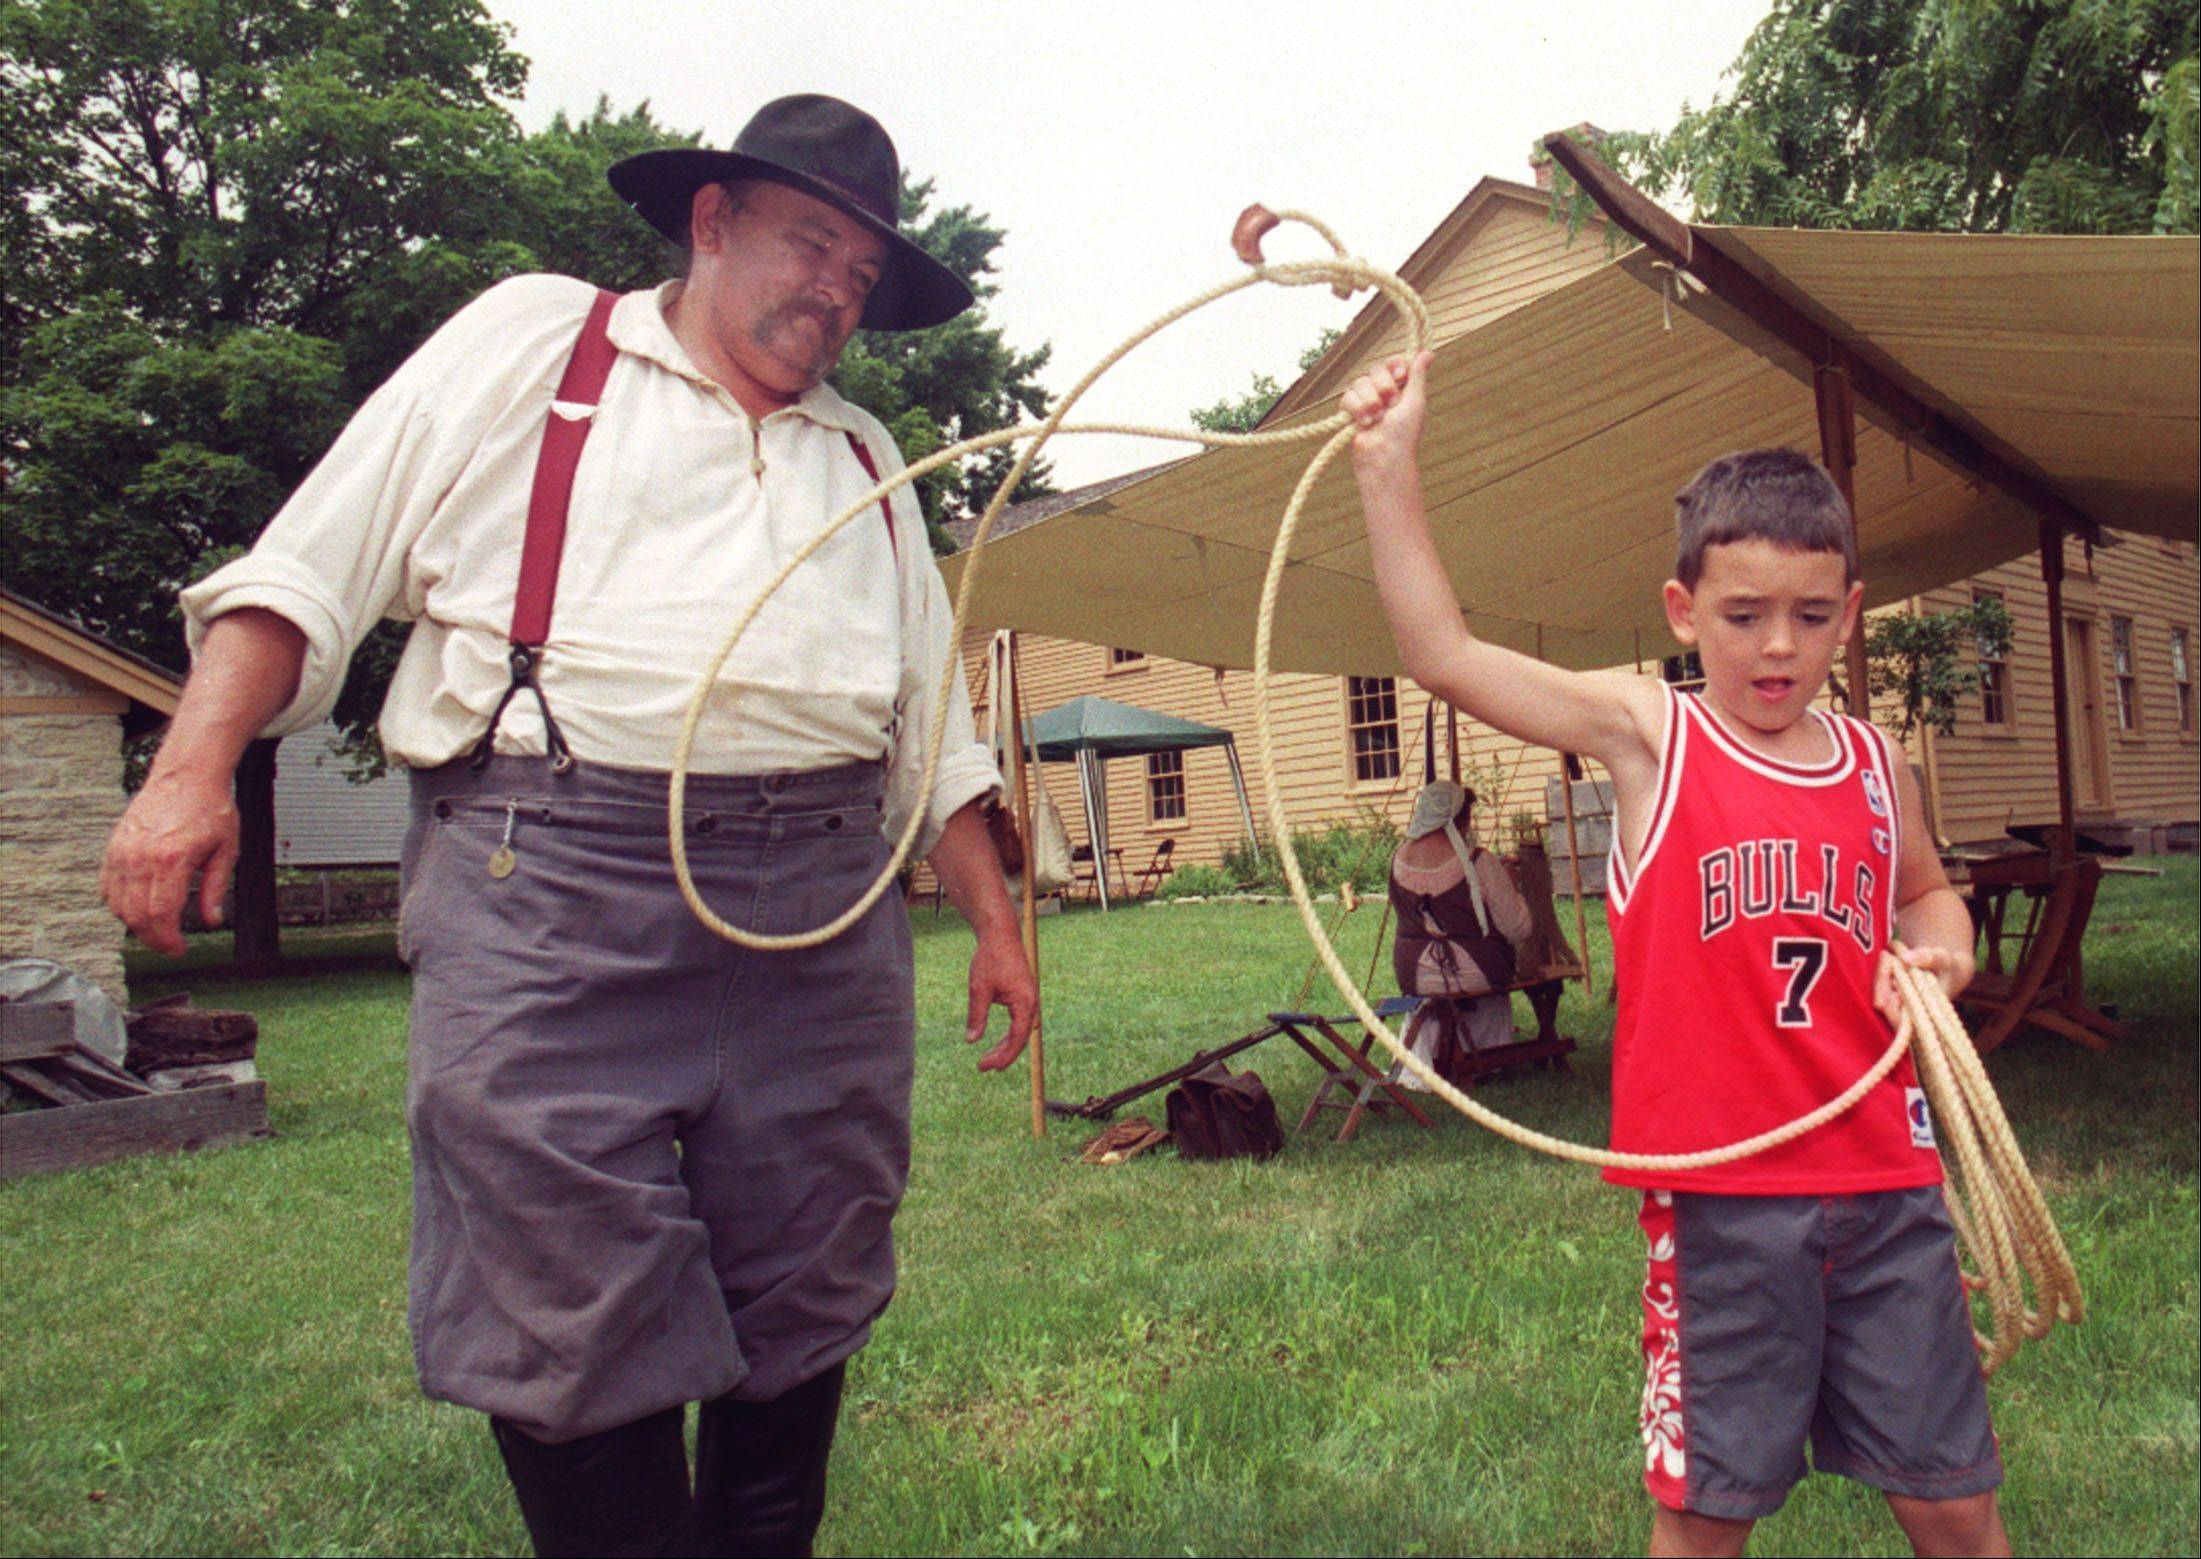 Glen Ellyn Historical Society�s Tavern Day celebration will allow folks of all ages to get a taste of pioneer life.